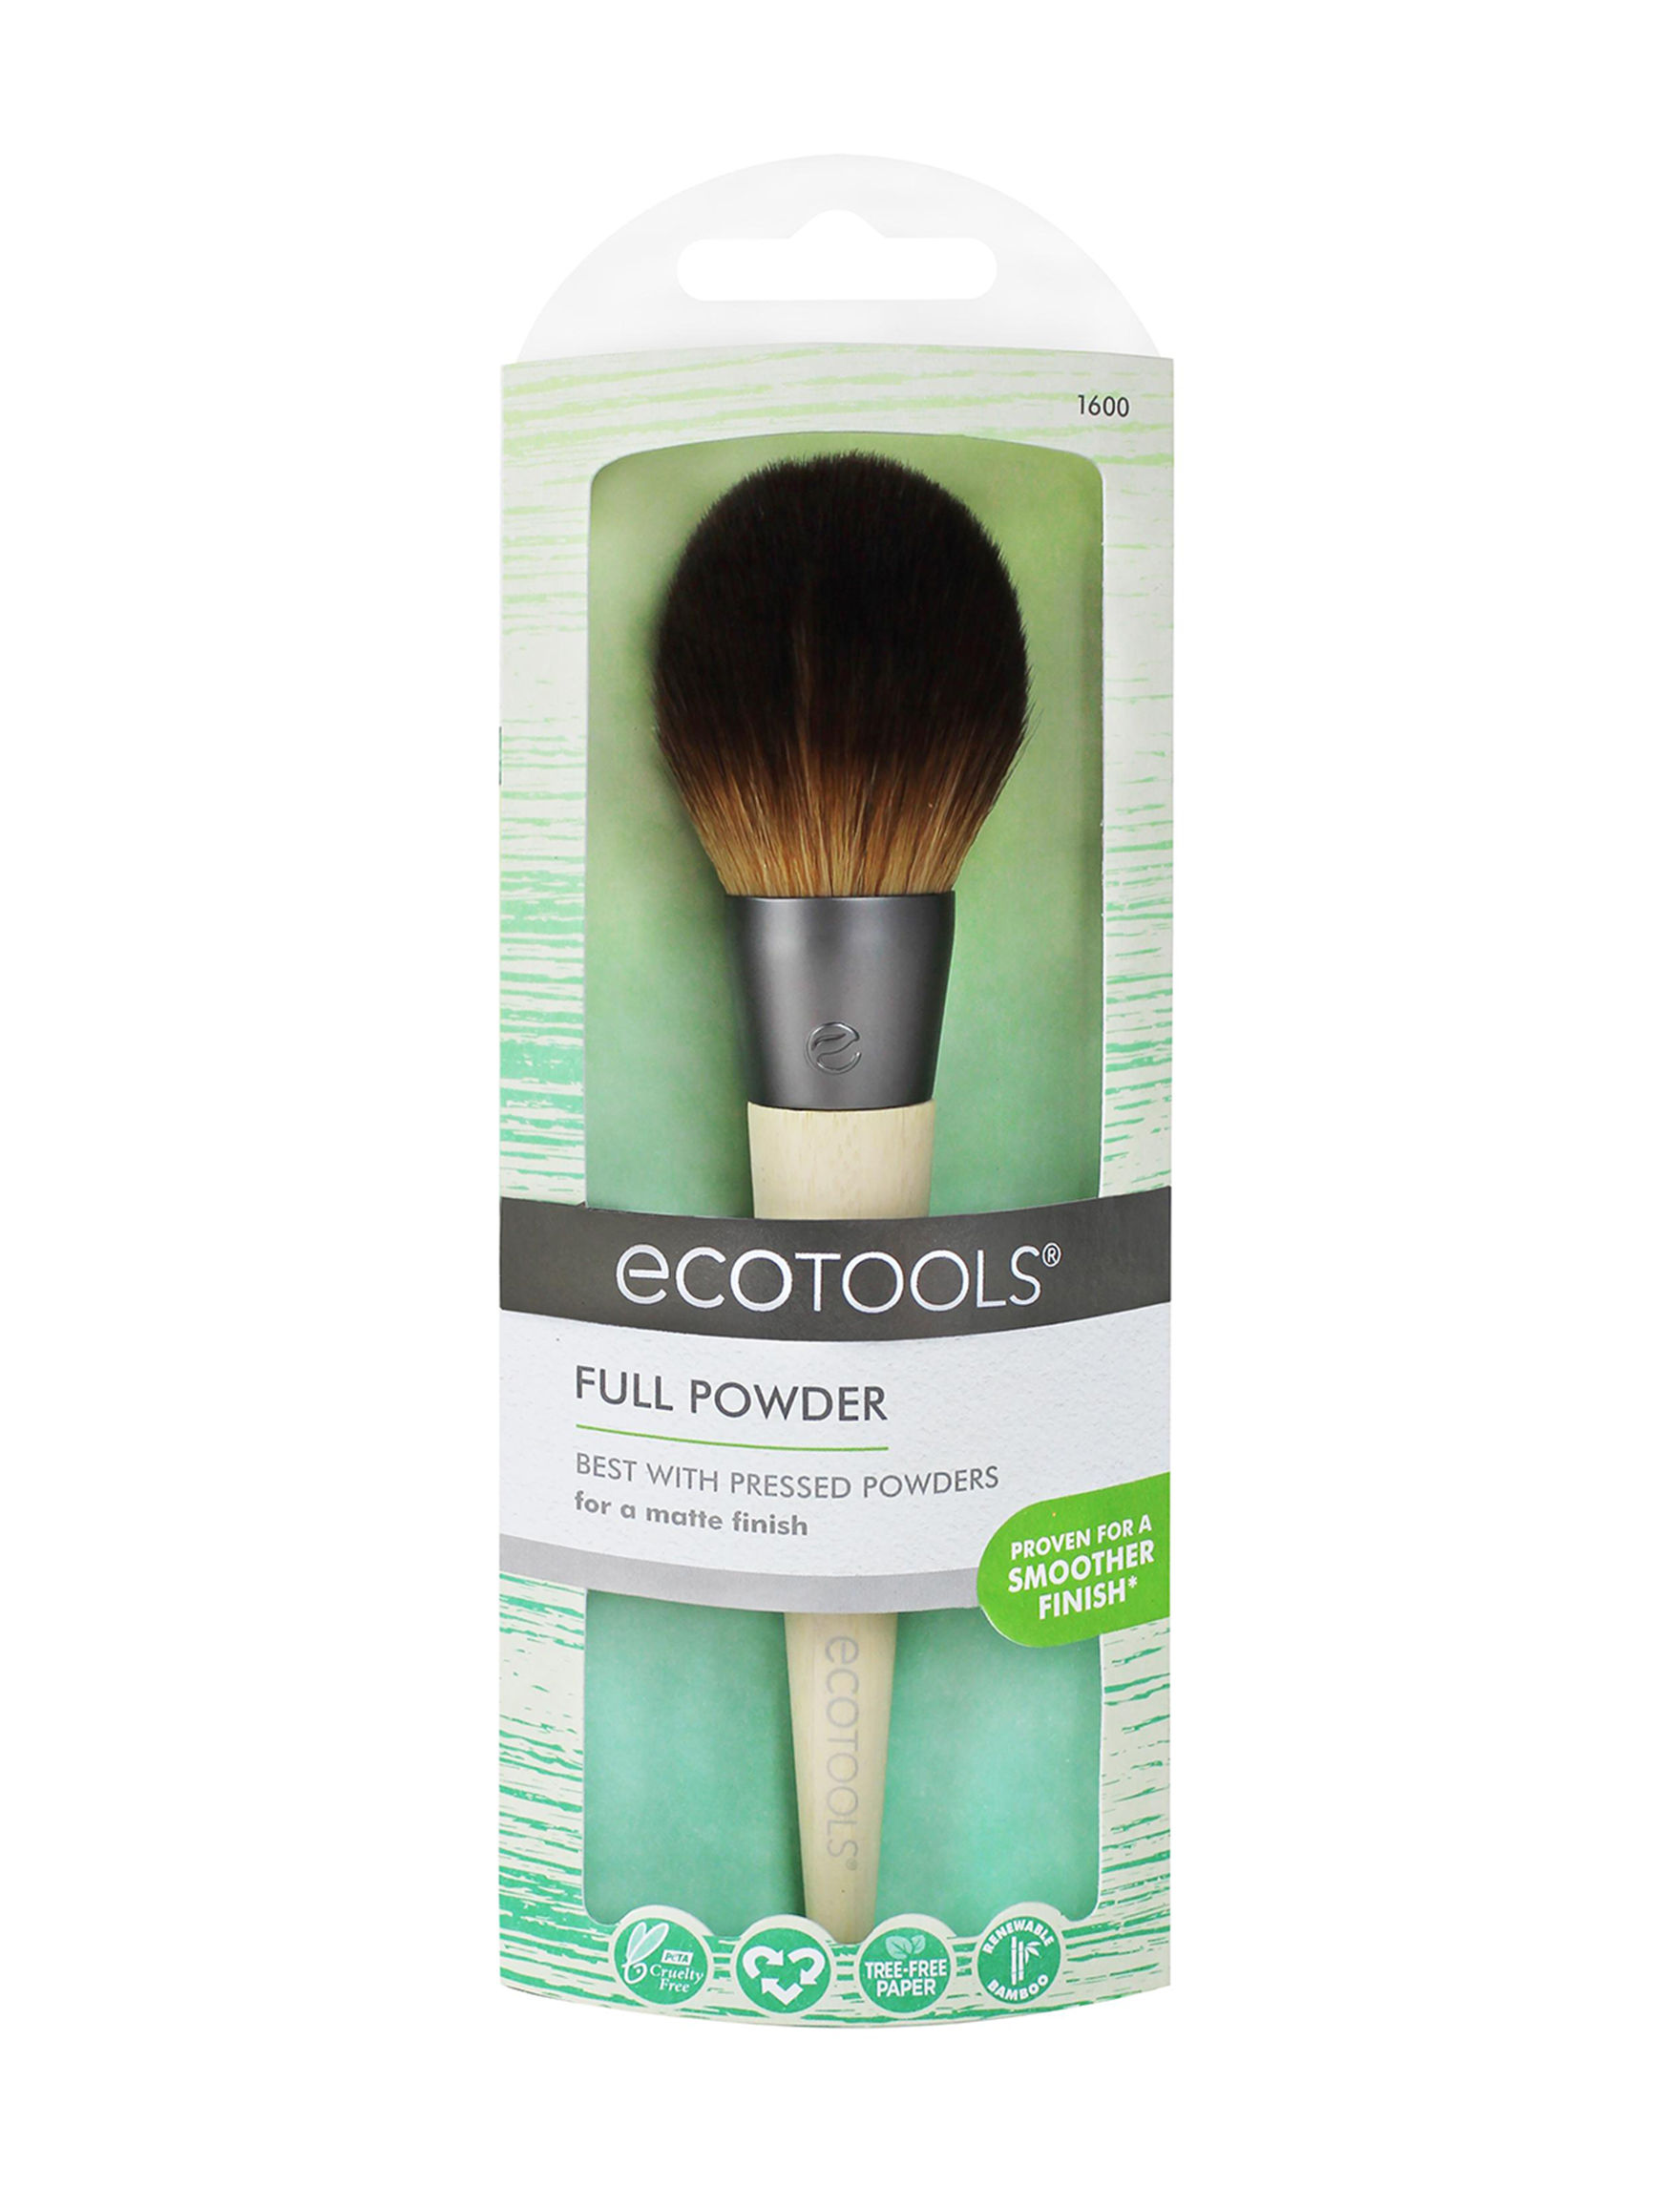 Ecotools Clear Tools & Brushes